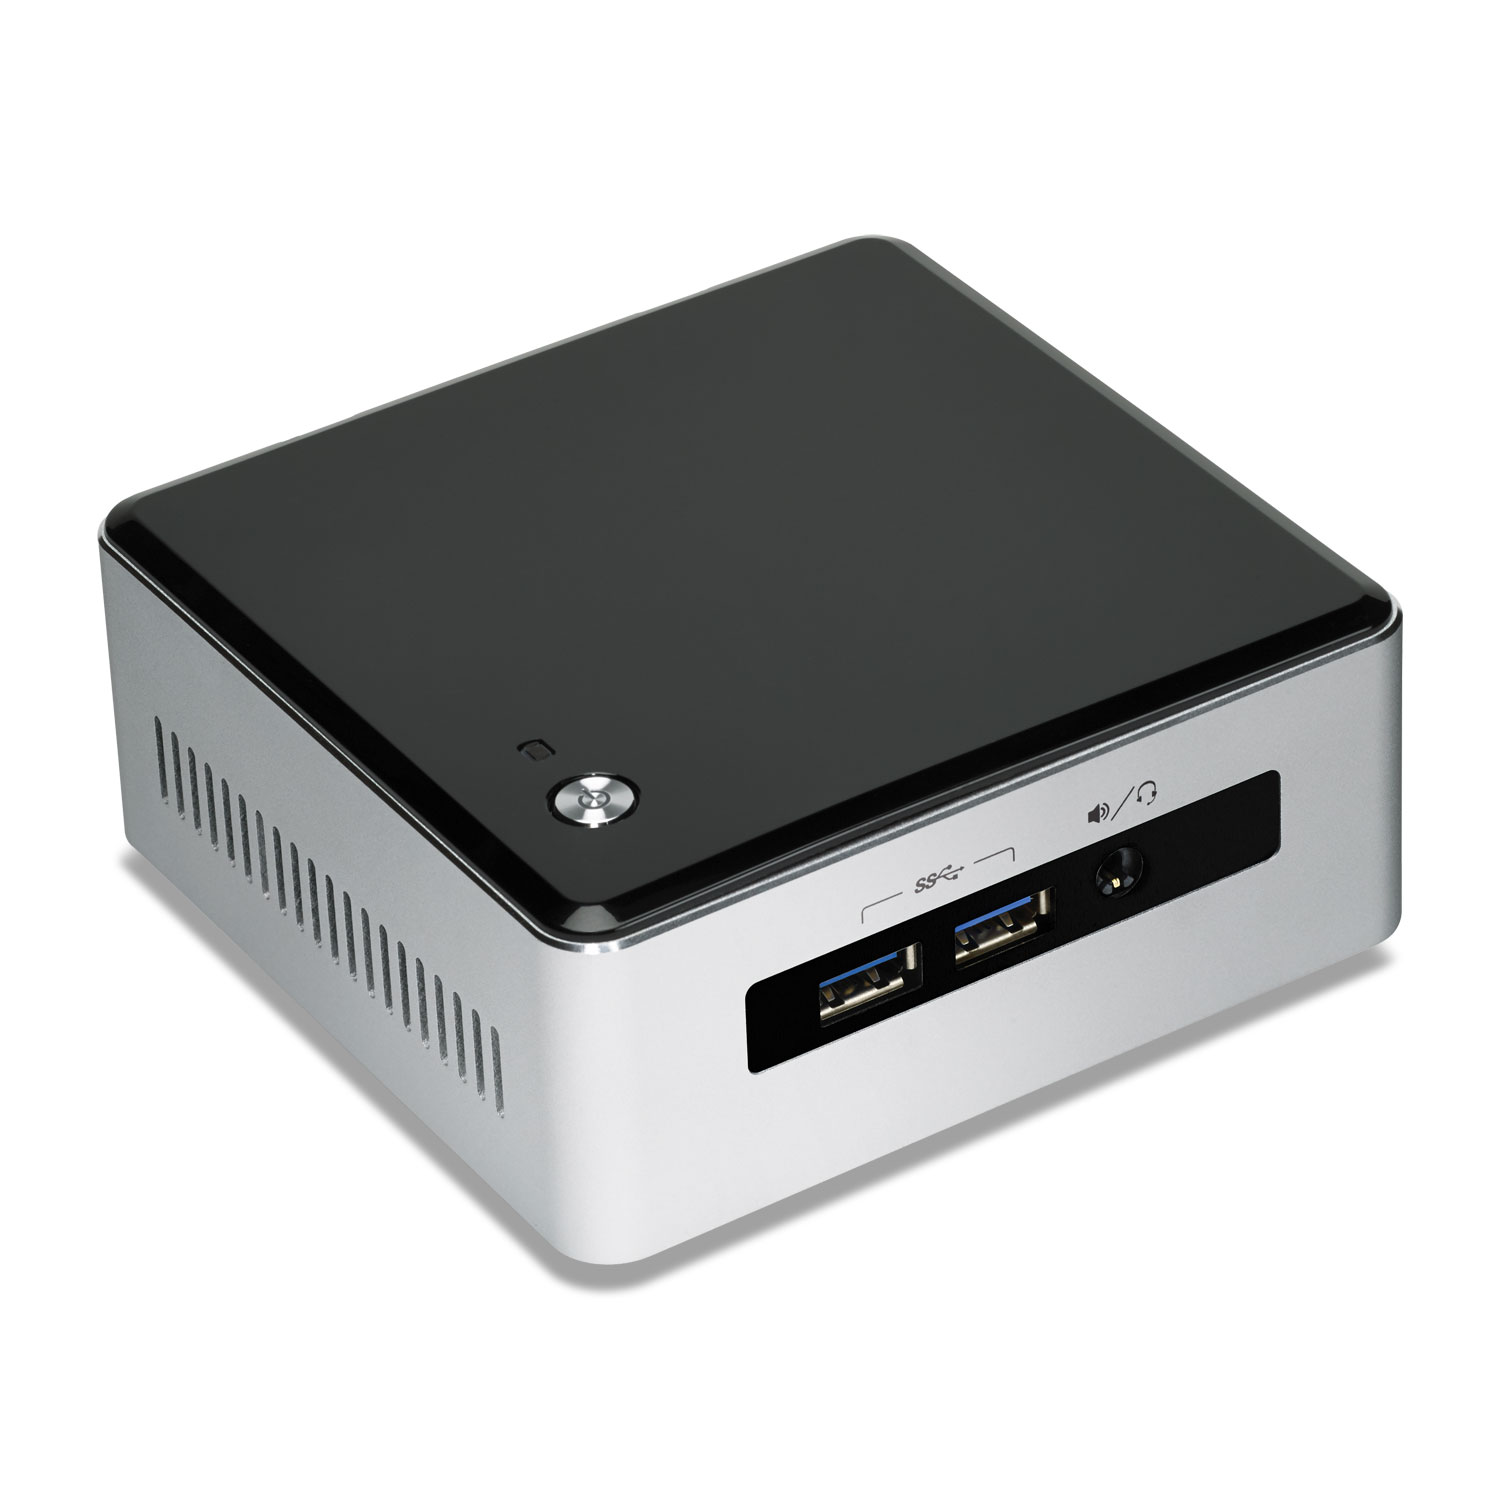 Intel NUC Kit 5I5MYHE i5/USB3/mDP/eDP/WF/M.2/2,5""